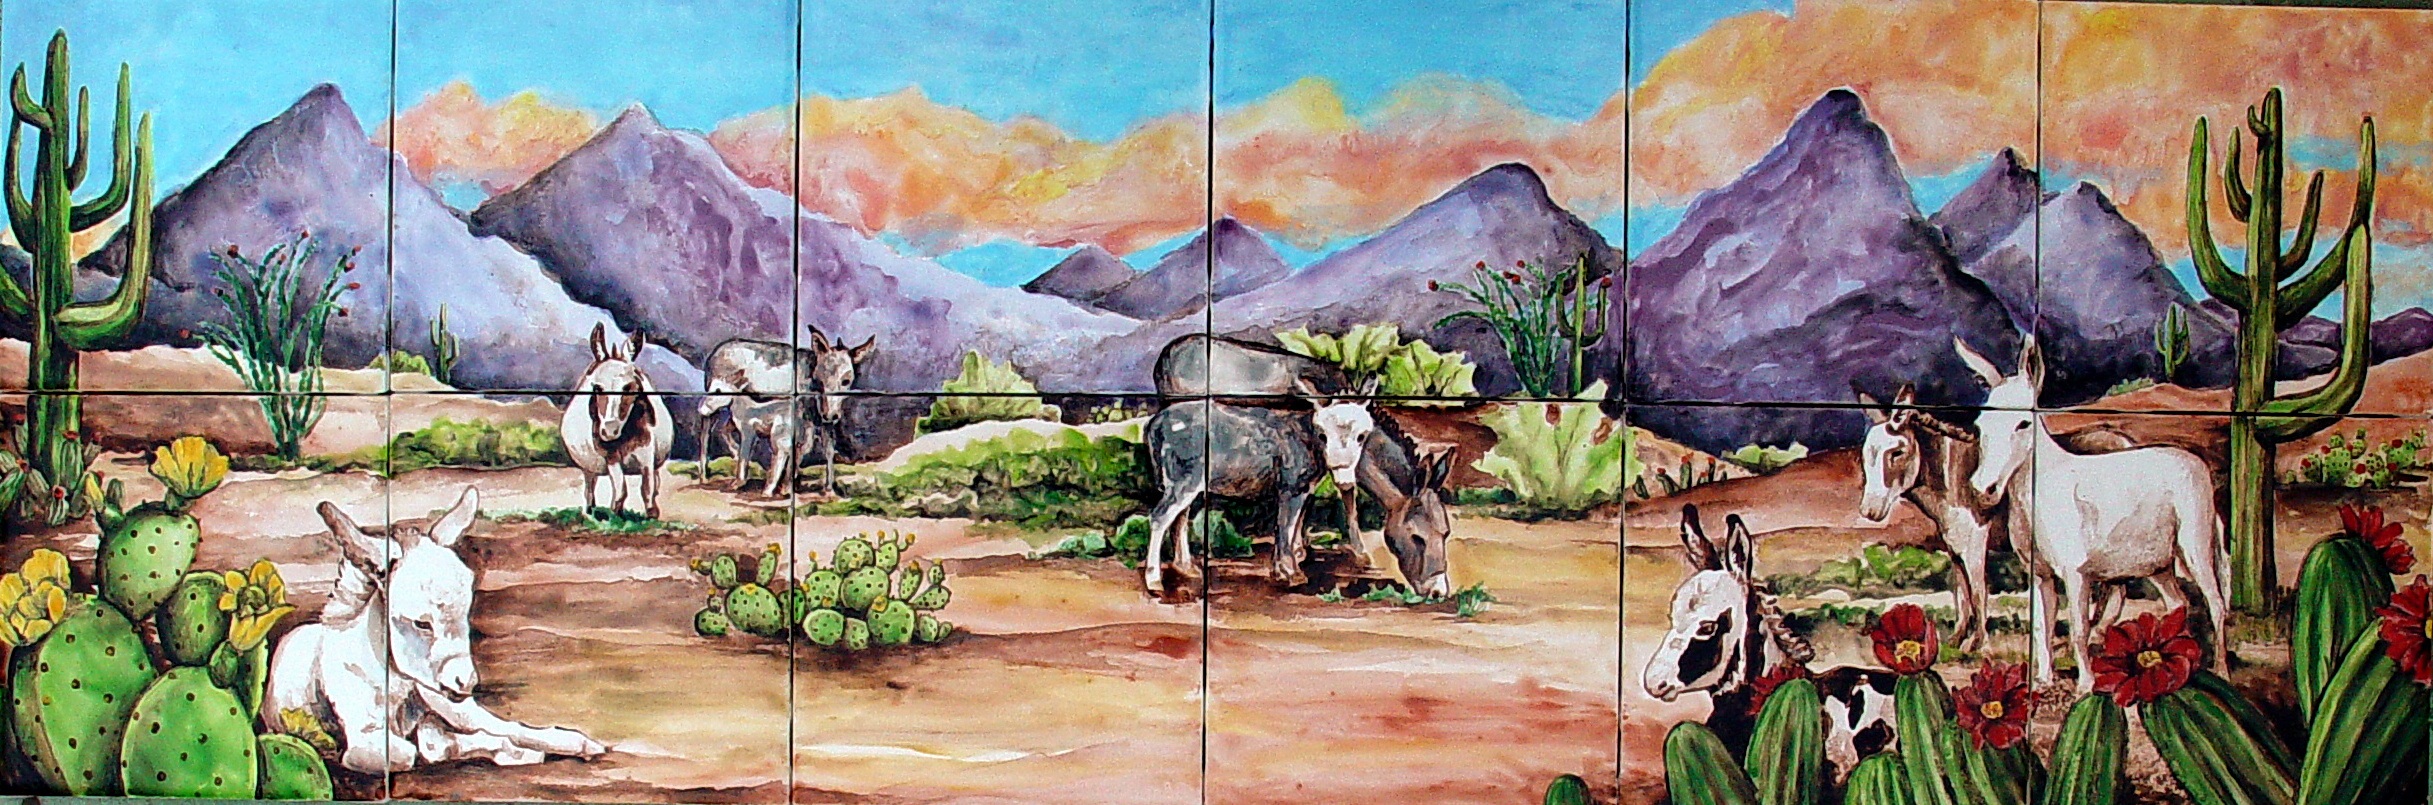 Animal Ceramic Tile Murals 2